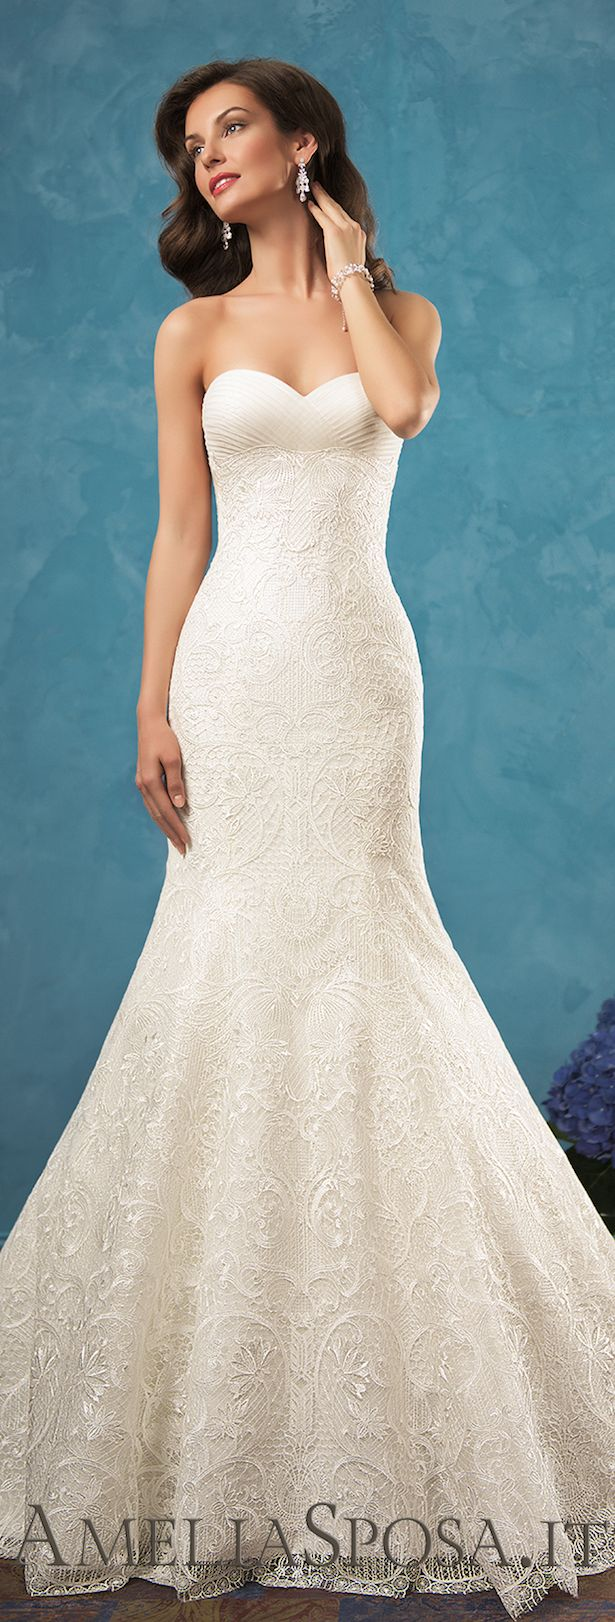 201 best wedding\'s 2018 images on Pinterest | Bridal gowns, Wedding ...